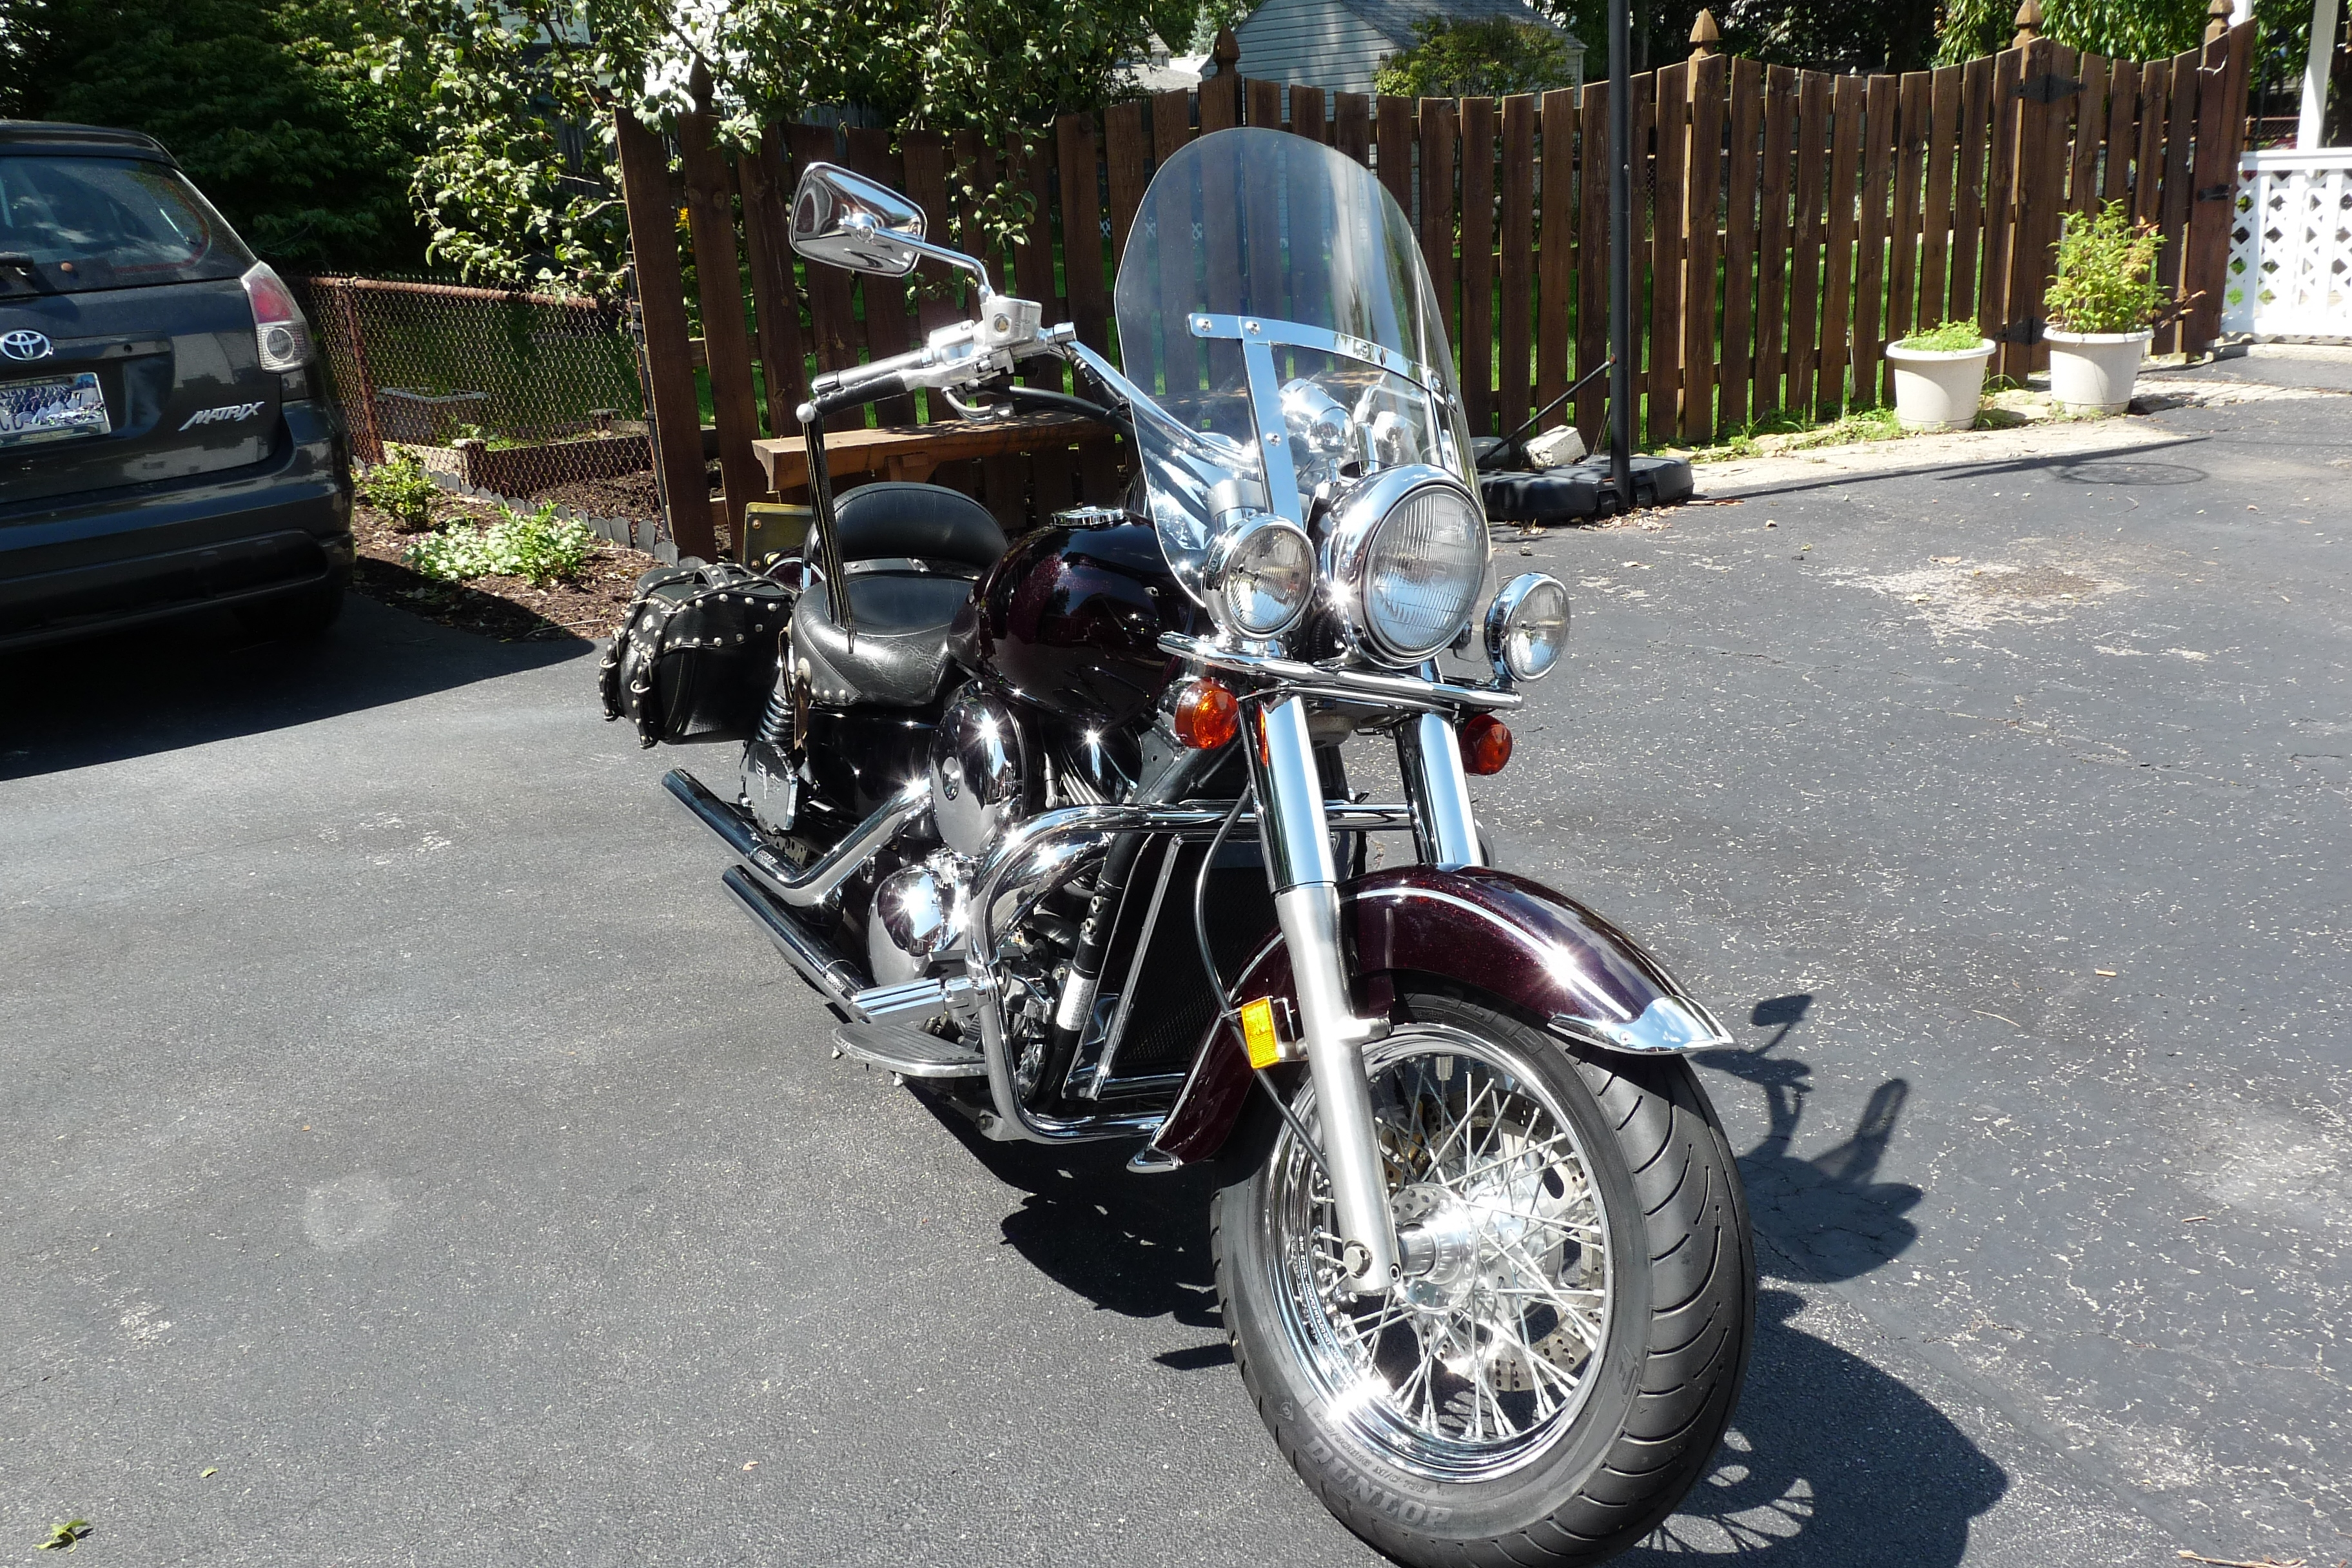 2003 Kawasaki Vulcan for sale - Non Hunting Items For Sale and Trade